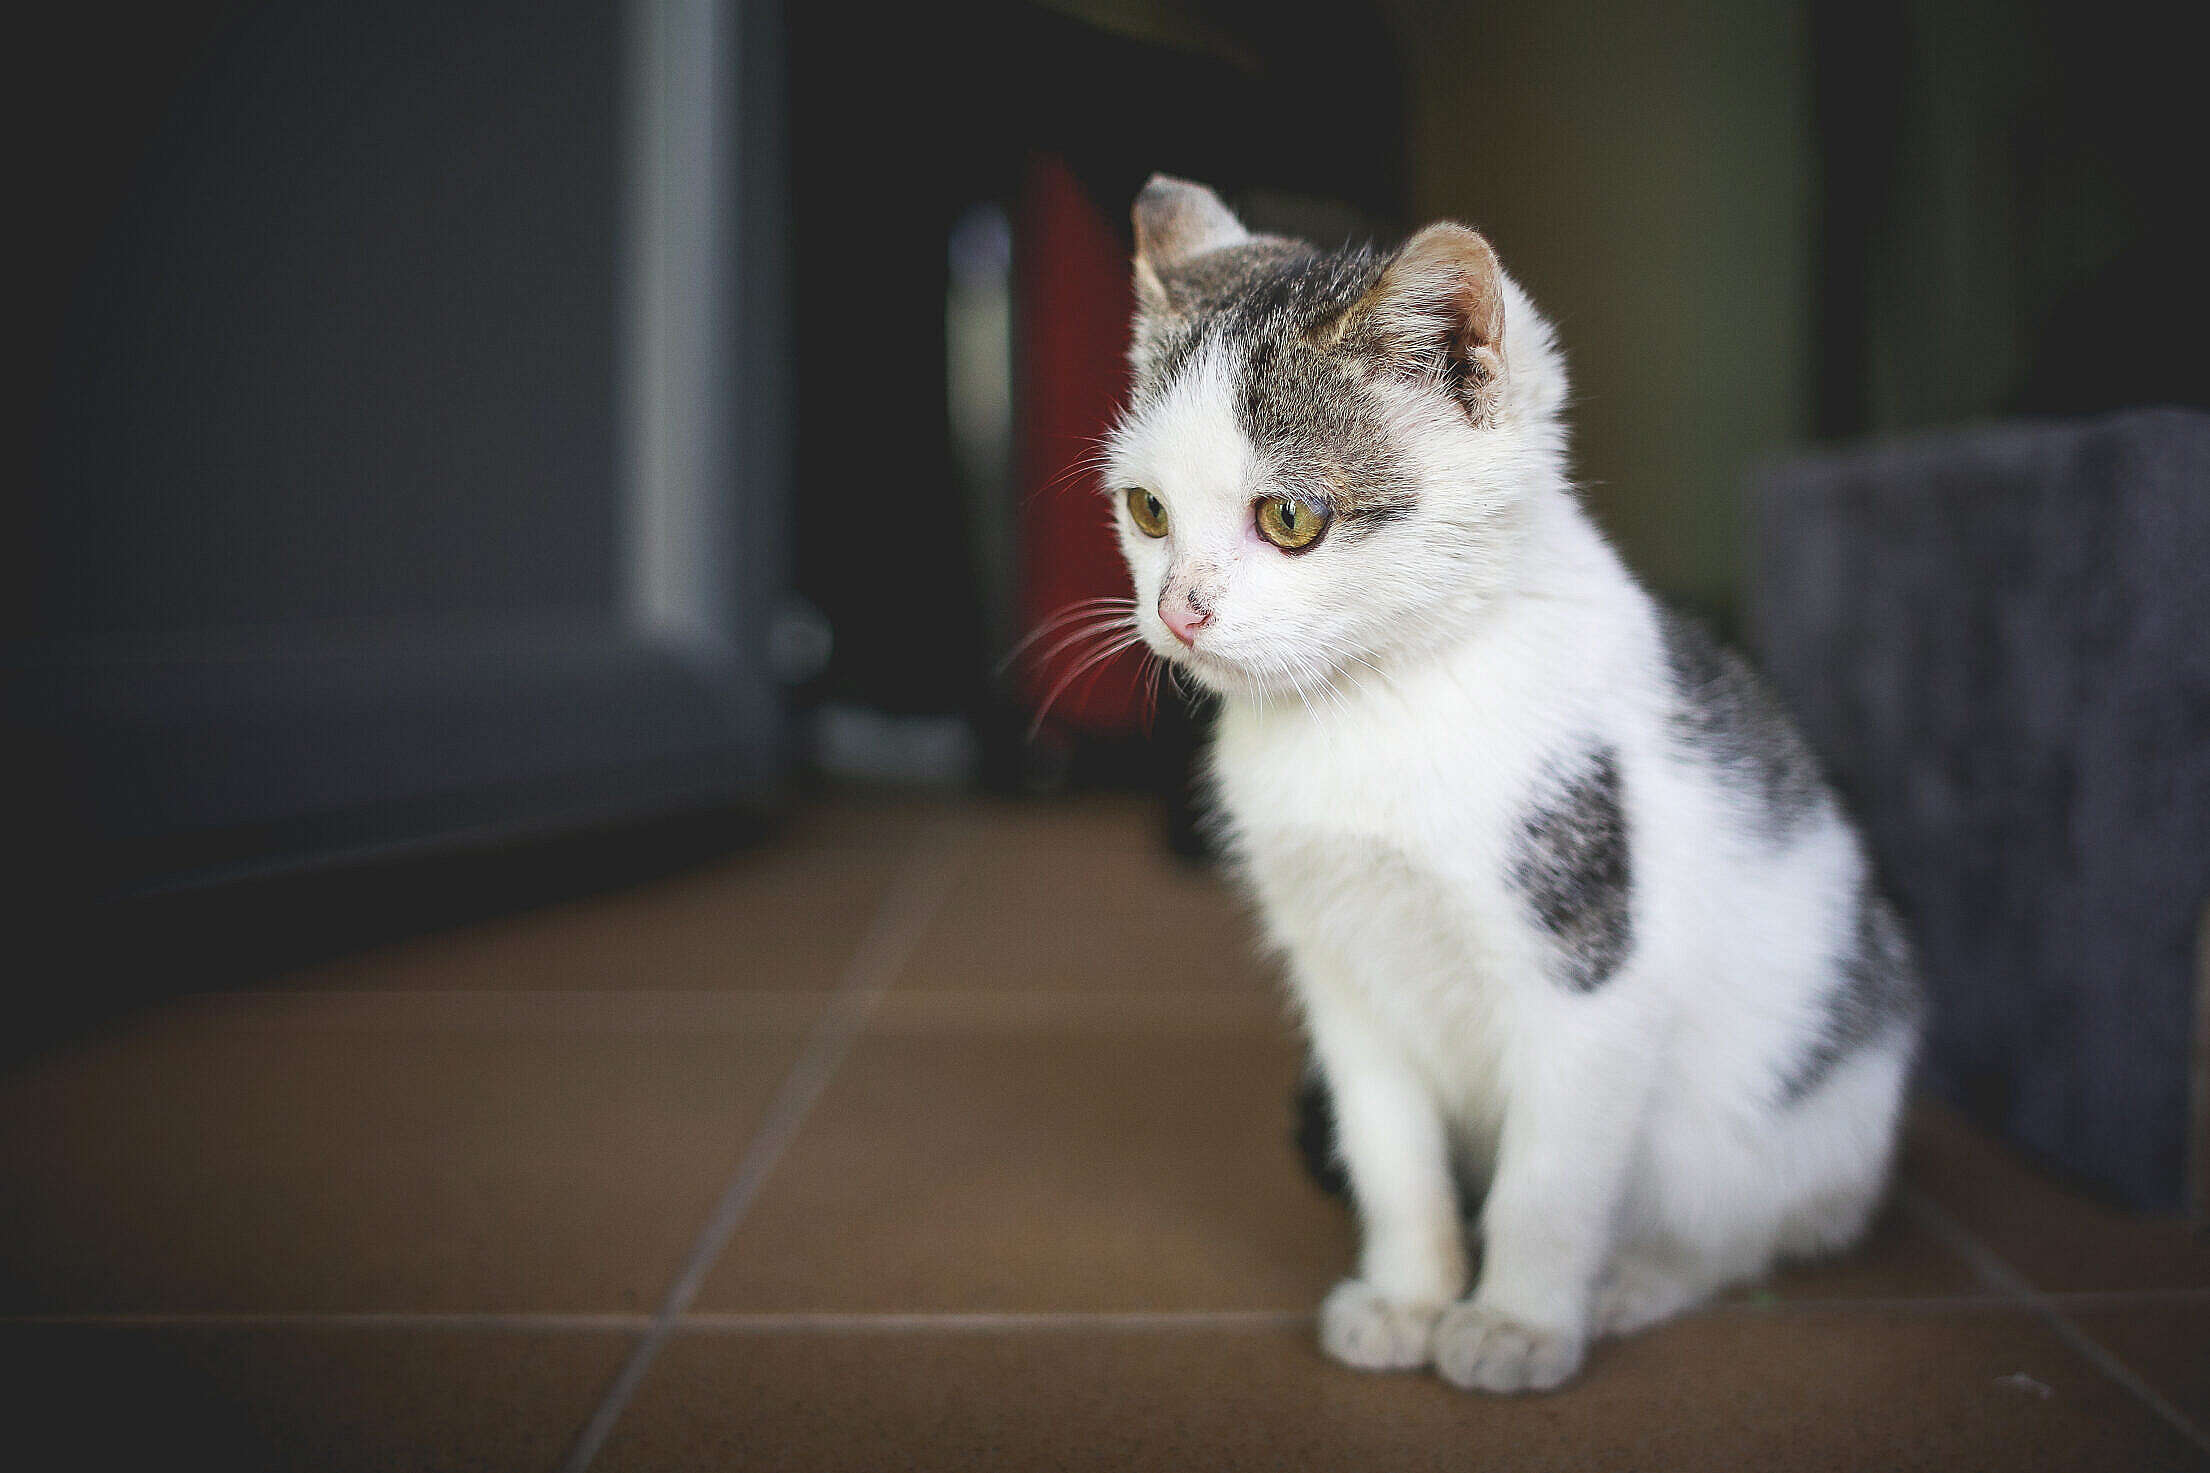 Cute Little Cat at Home Free Stock Photo